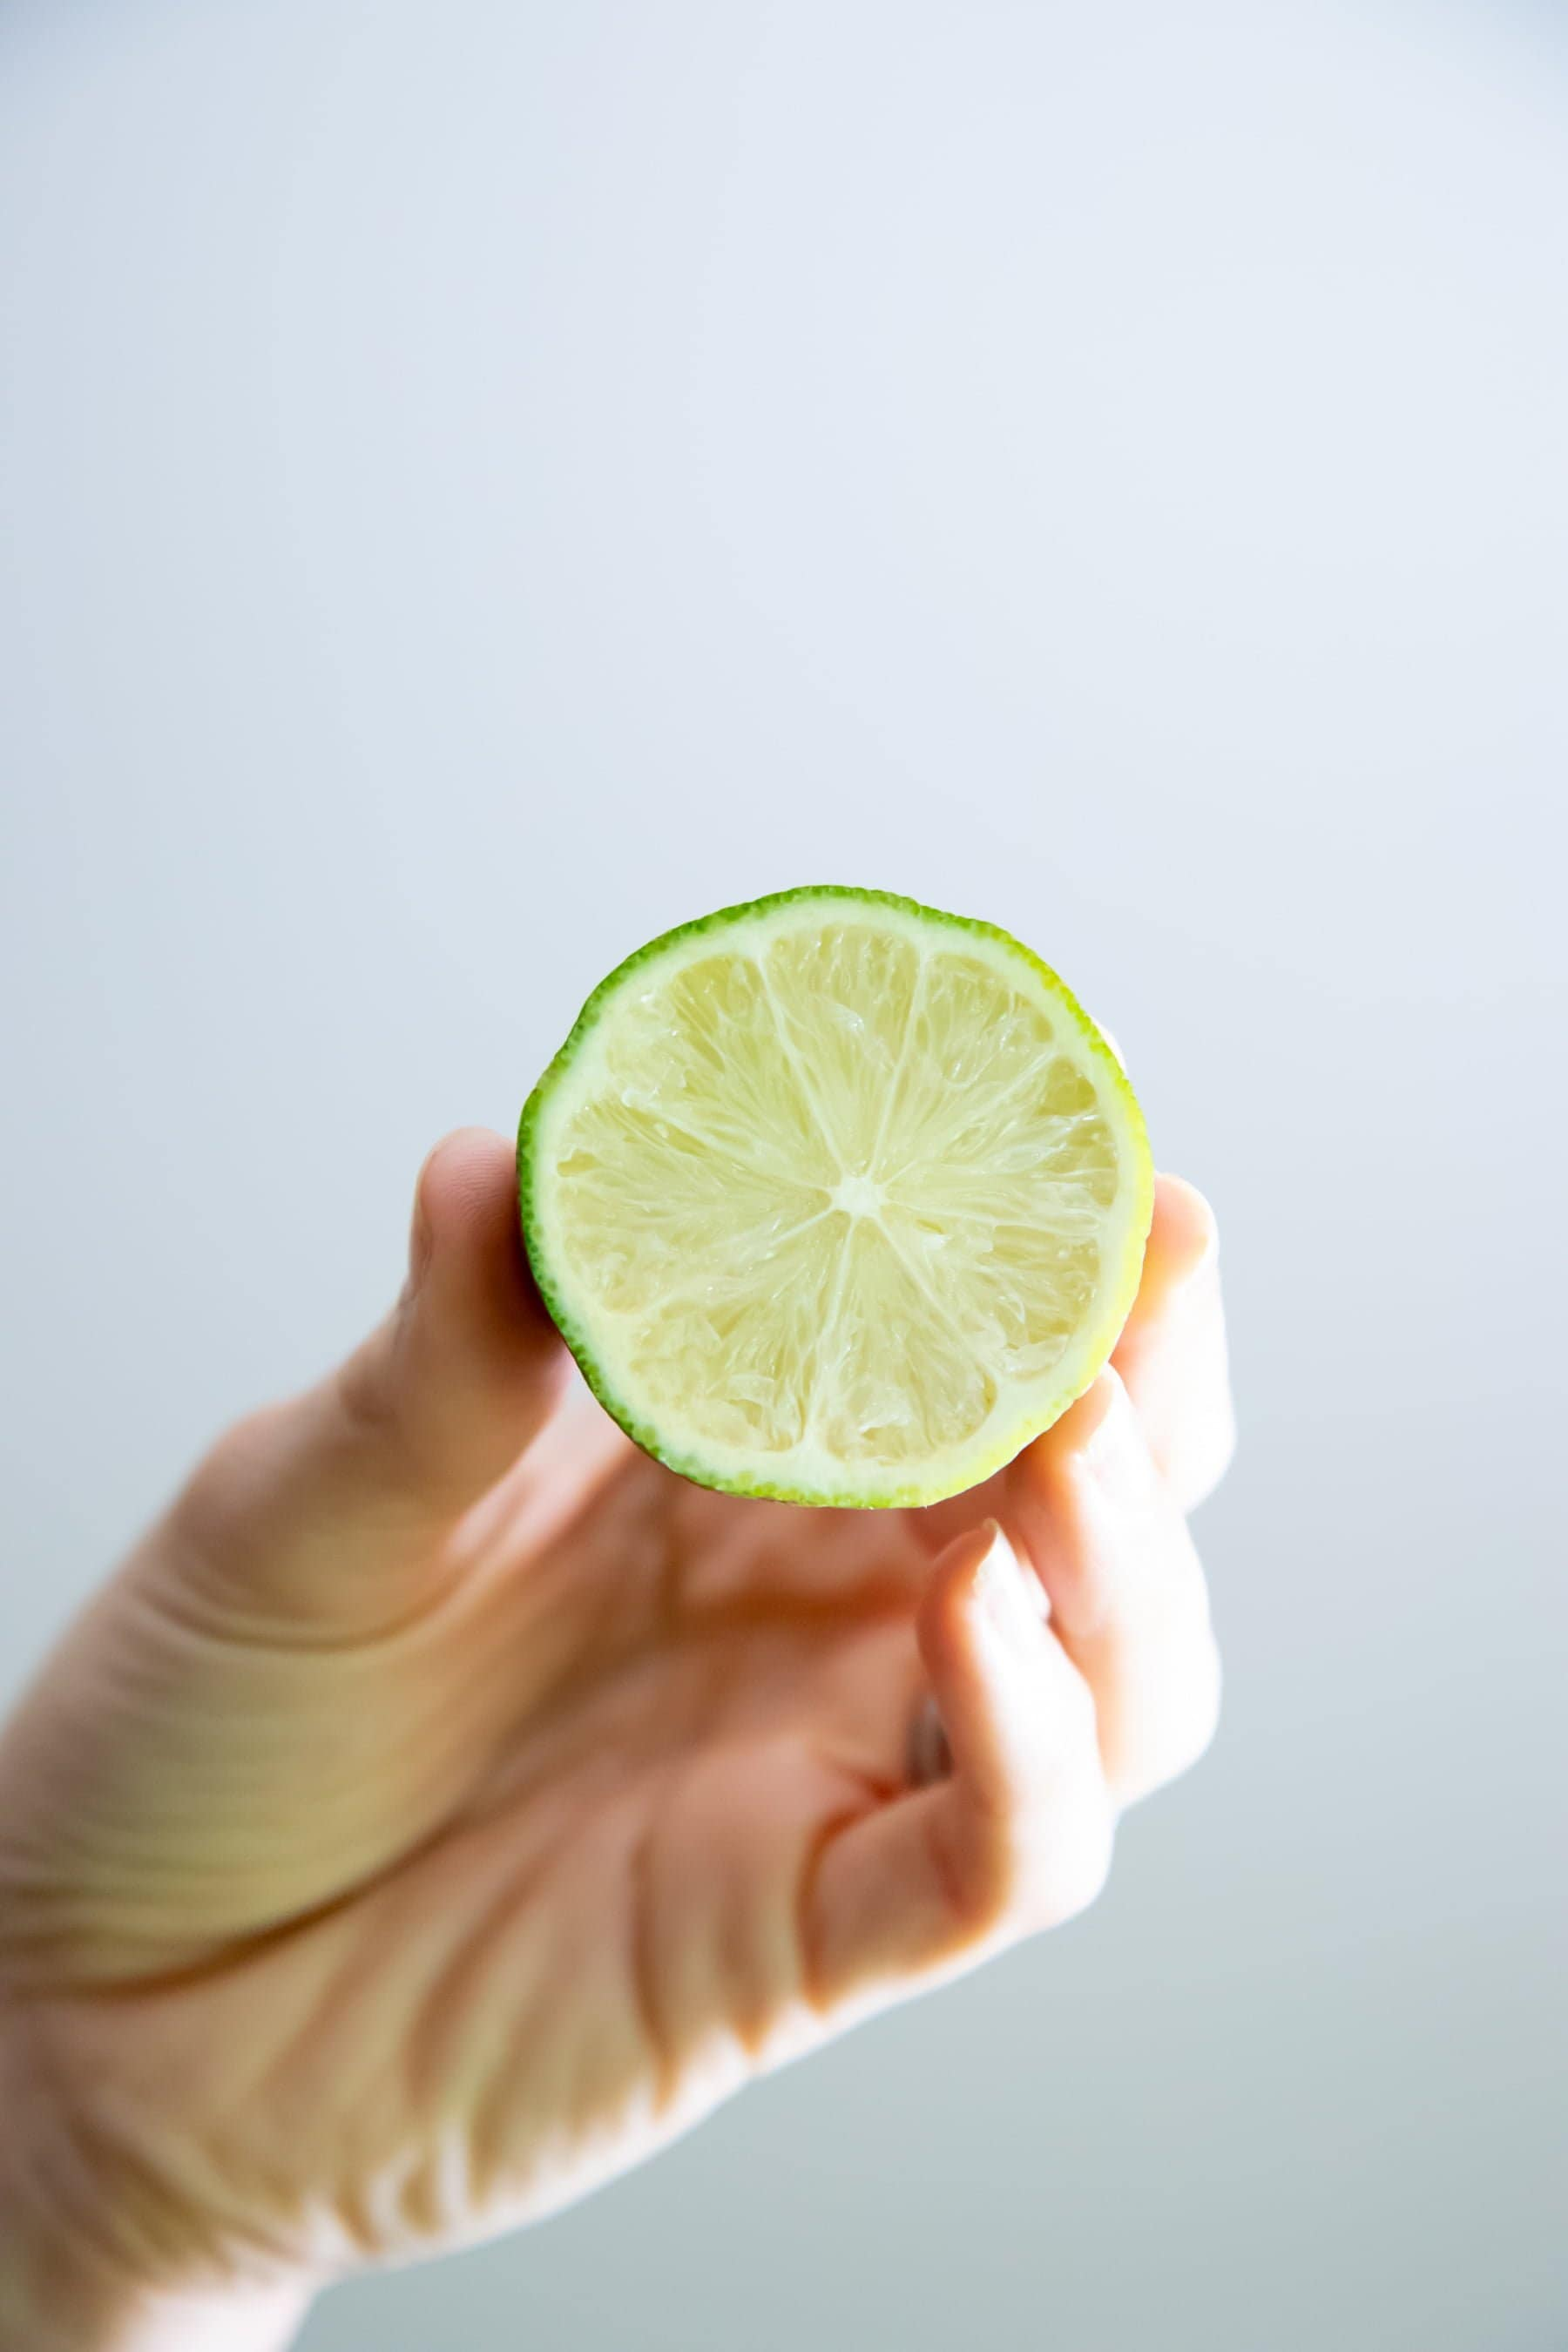 Hand holding a halved lime, with the cut side facing the camera